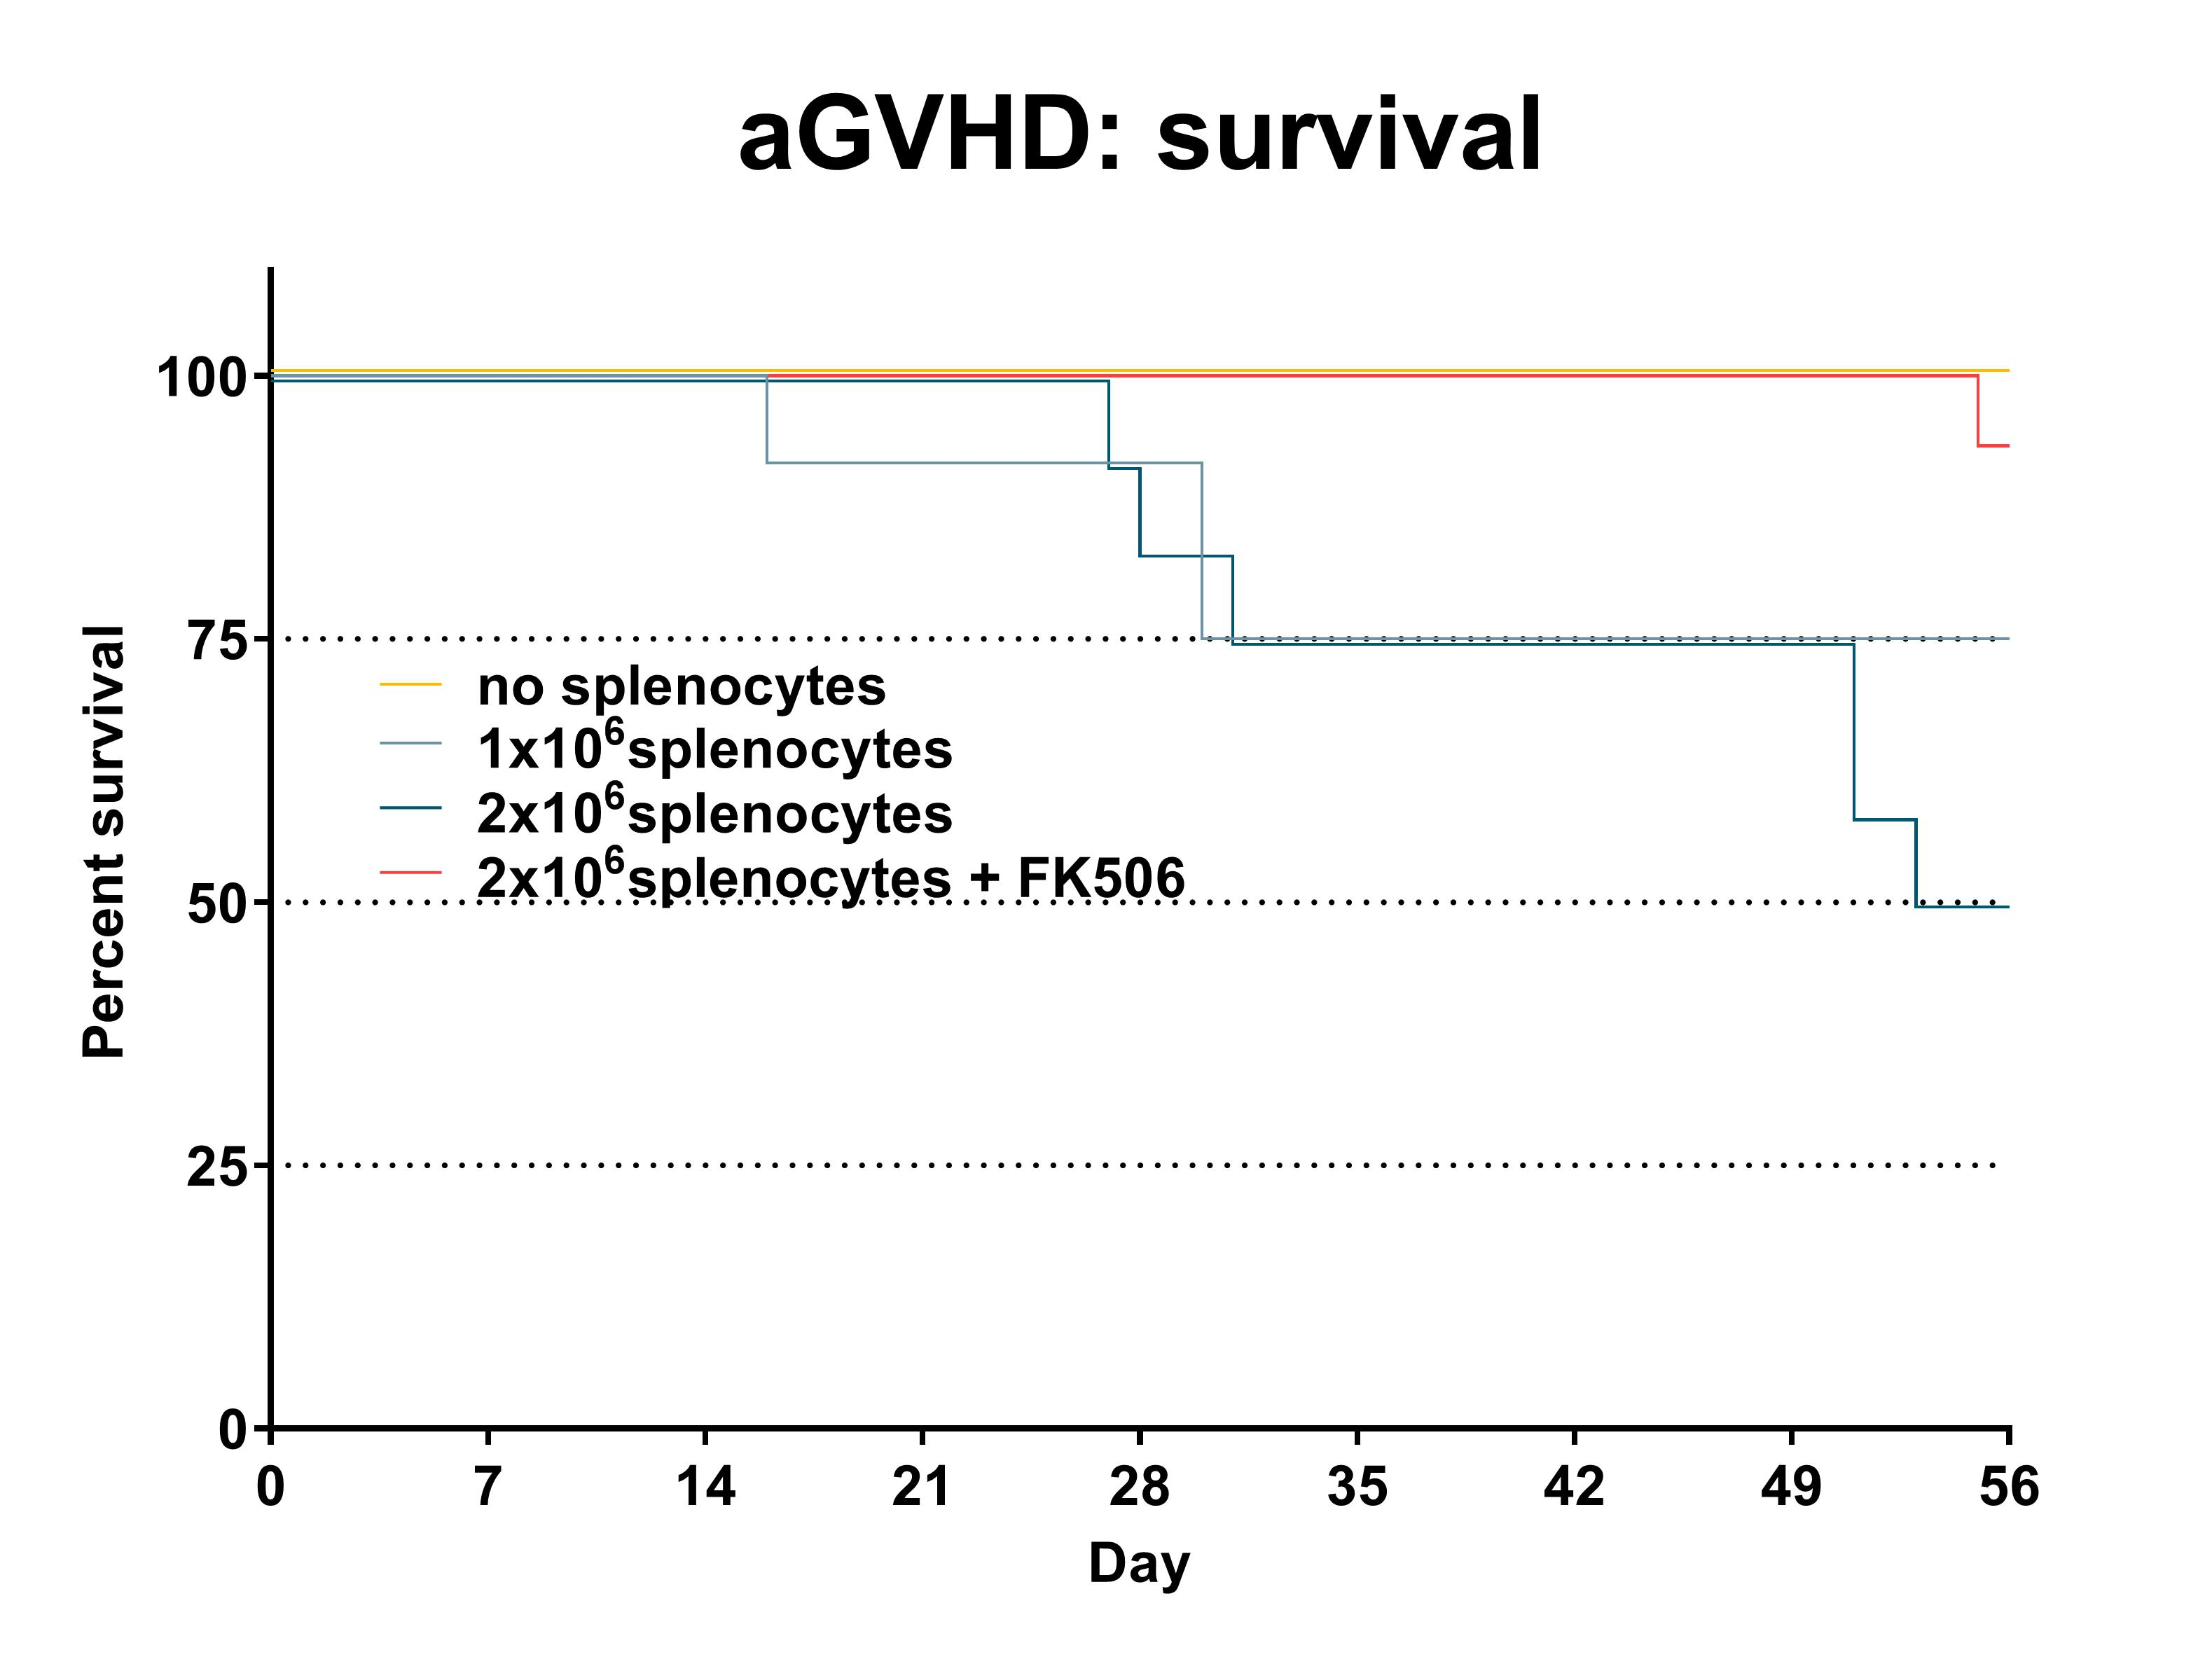 Recipient mice were pre-conditioned and transplanted with 1x107donor-derived CD3-depleted bone marrow cells supplemented with different numbers of splenocytes (see legend) on day 0. Survival was recorded daily. Statistical evaluation by Mantel-Cox test. *: p<0.05 compared to 'no splenocytes' control; #: p<0.05 compared to '2x106 splenocytes' group. n=15 per group.